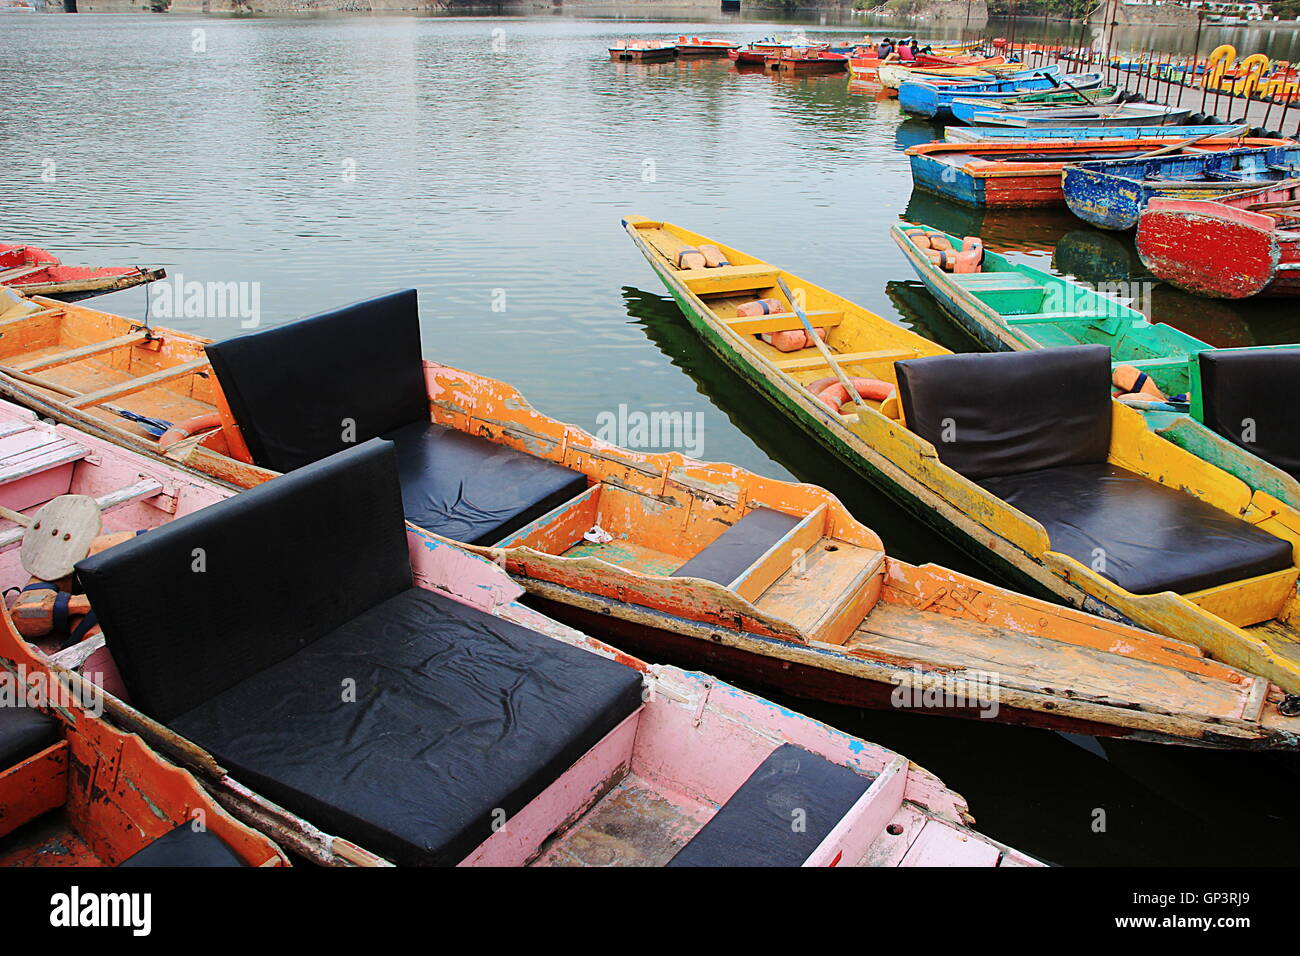 Attractive, colorful row boats waiting for tourists at Nakki Lke, Mount Abu, Rajasthan, India, Asia - Stock Image